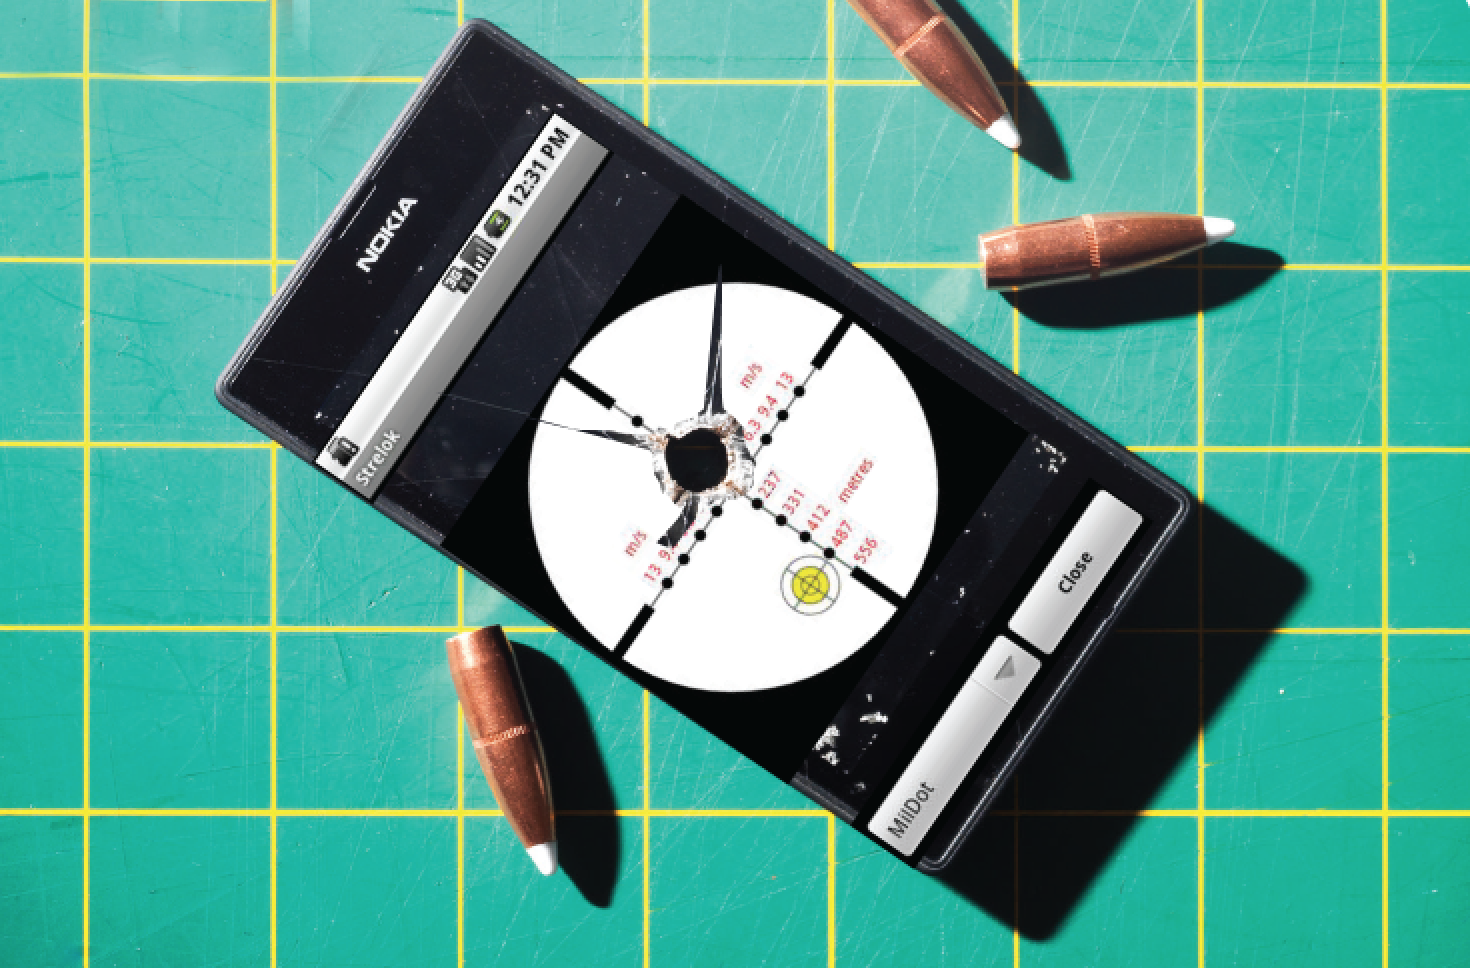 Ballistics Apps: Dope Your Shot on the Cheap